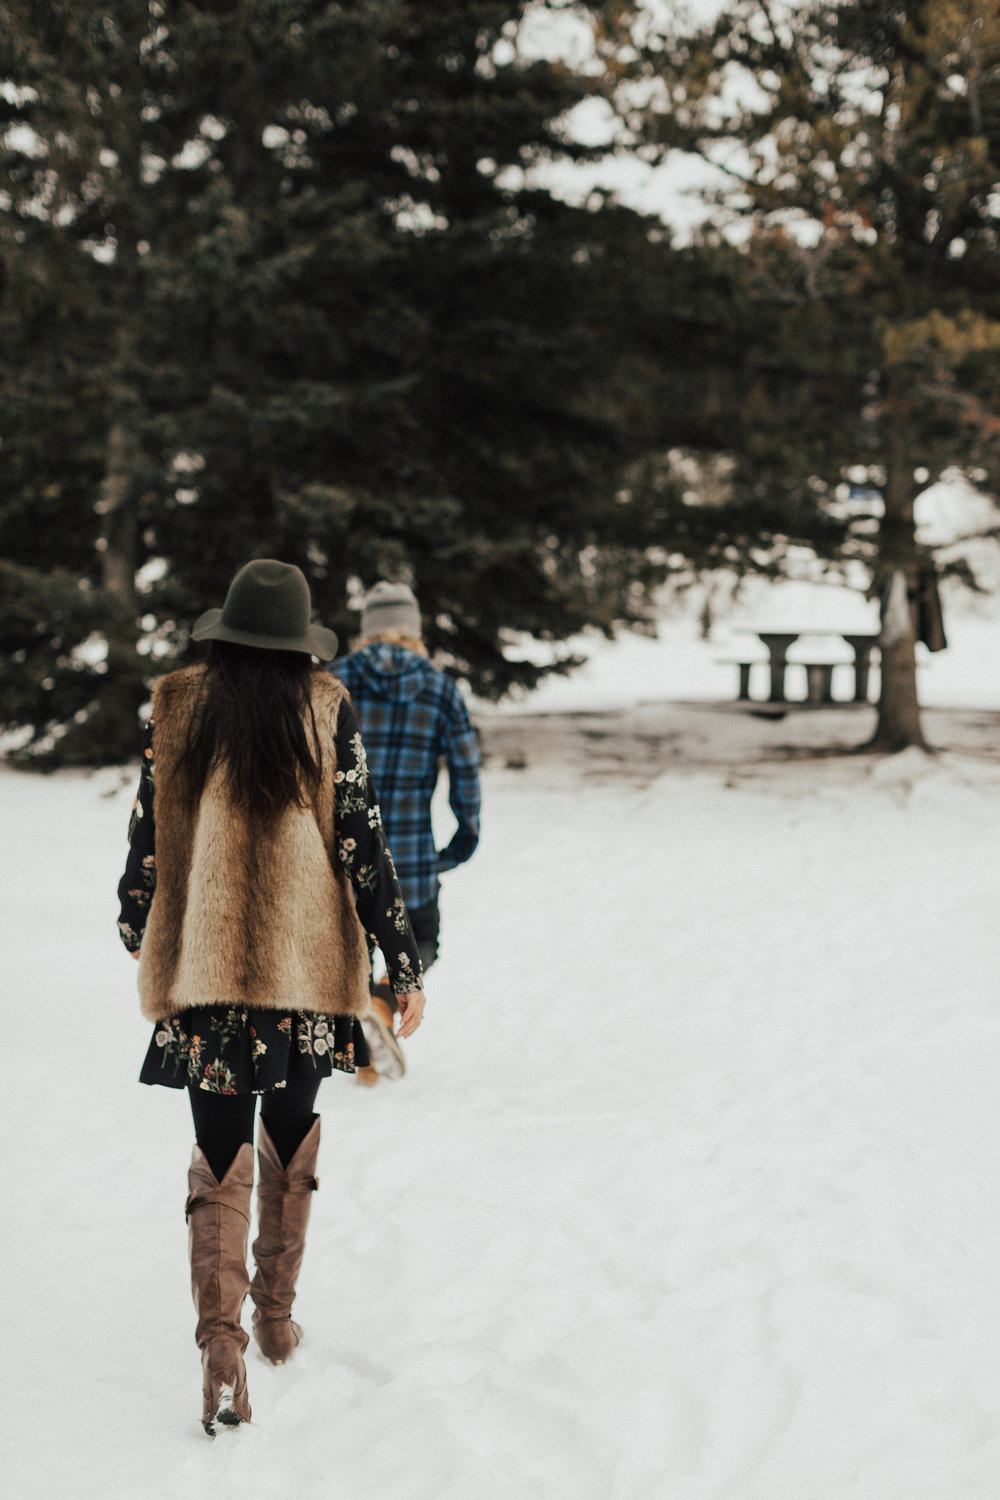 Banff Engagement Photographer - Winter Mountain Adventure Engagement Session - Michelle Larmand Photography-031